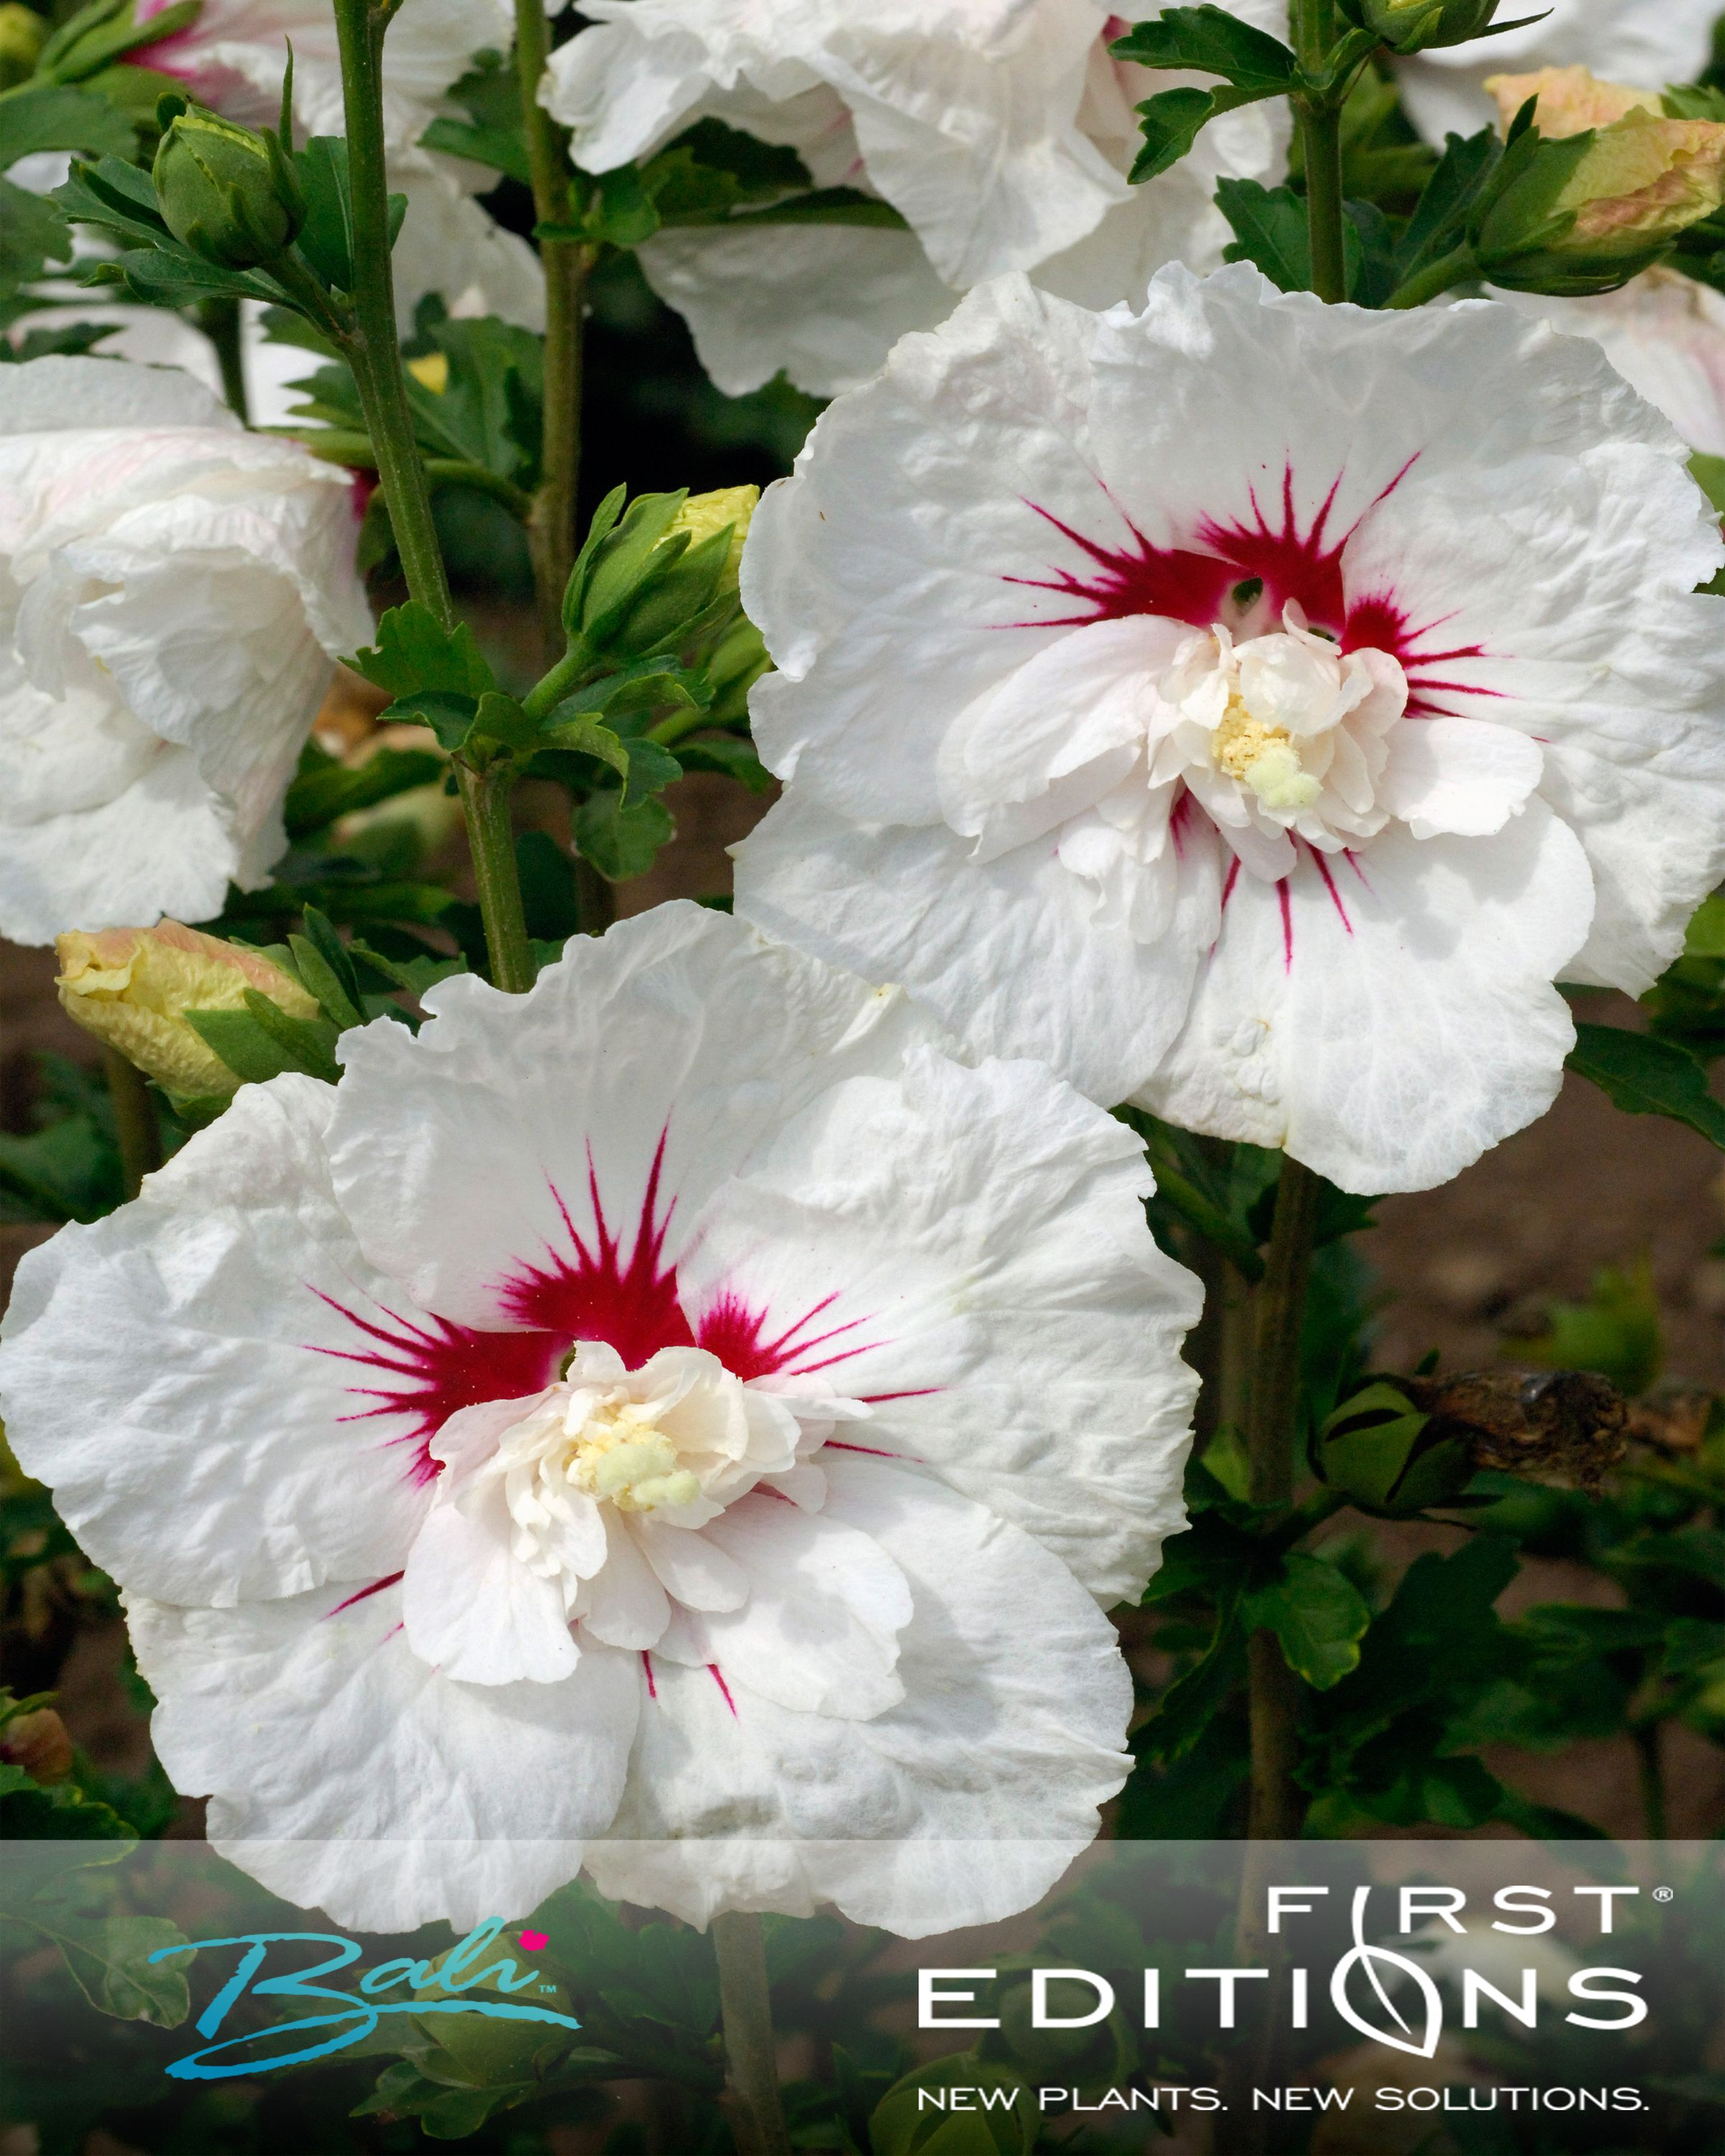 First Editions Bali Hibiscus Features Pure White Flowers With A